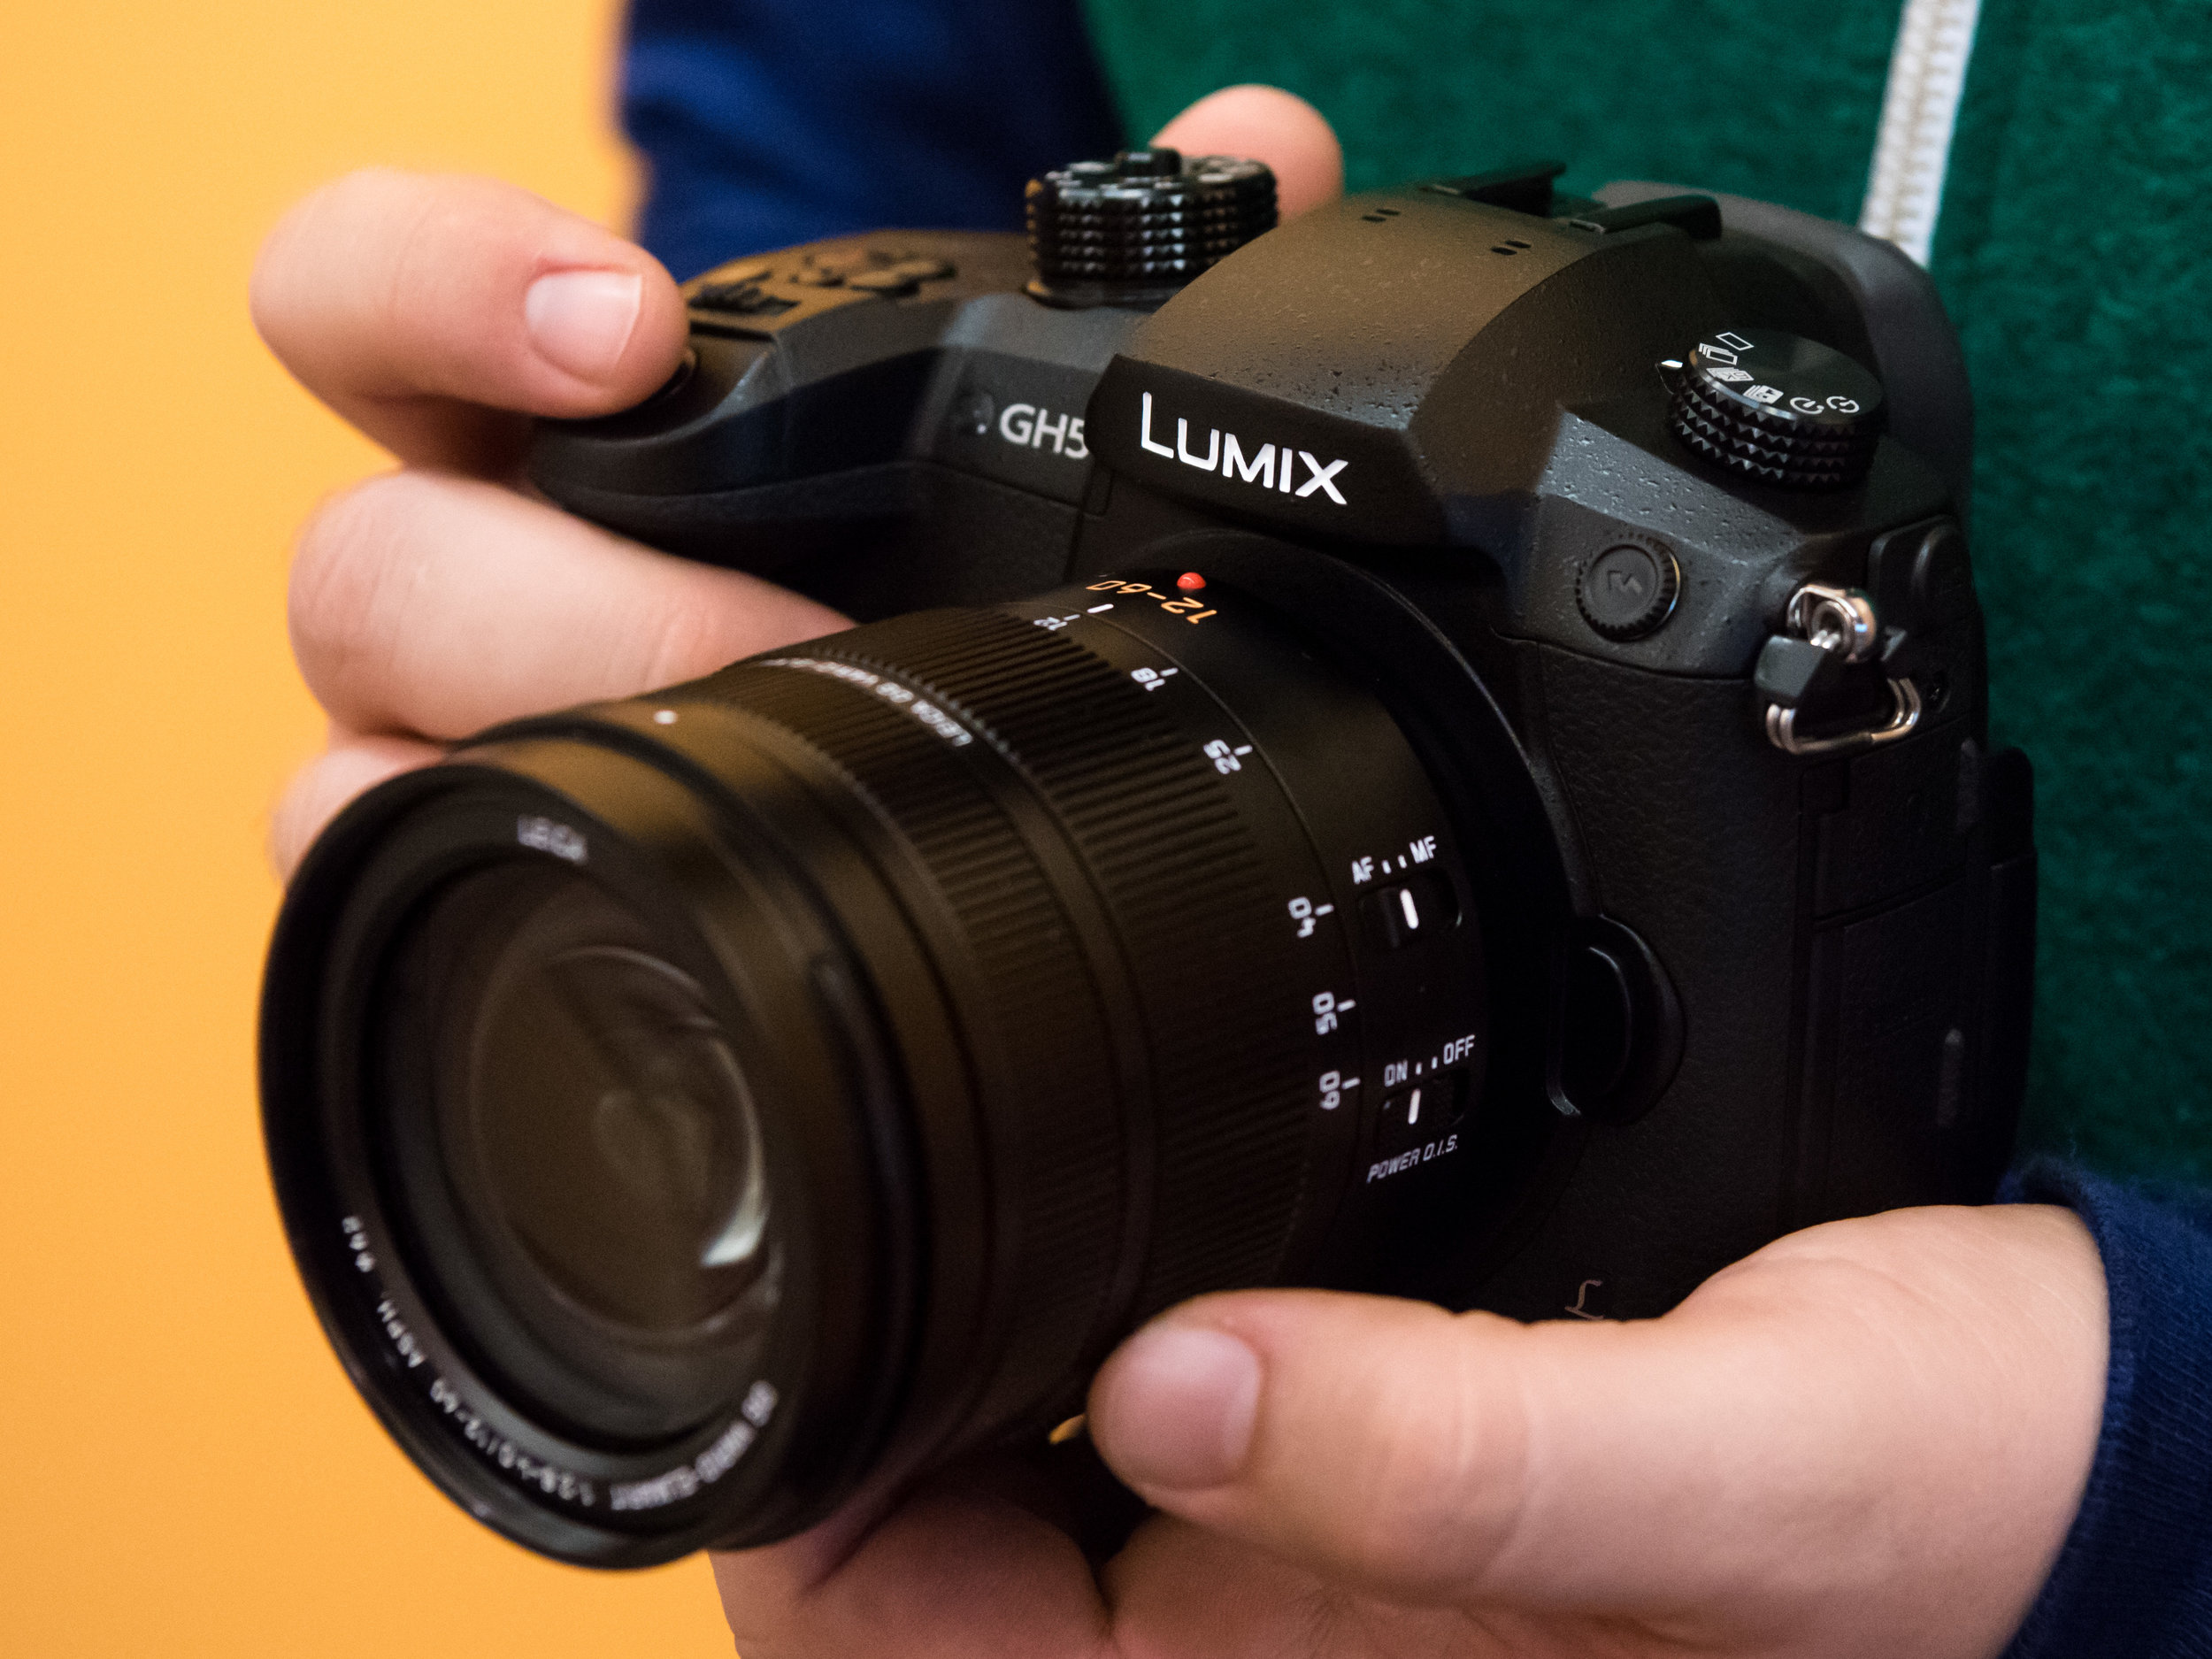 A Panasonic Lumix GH5 is an example of a popular micro four thirds mirrorless system.